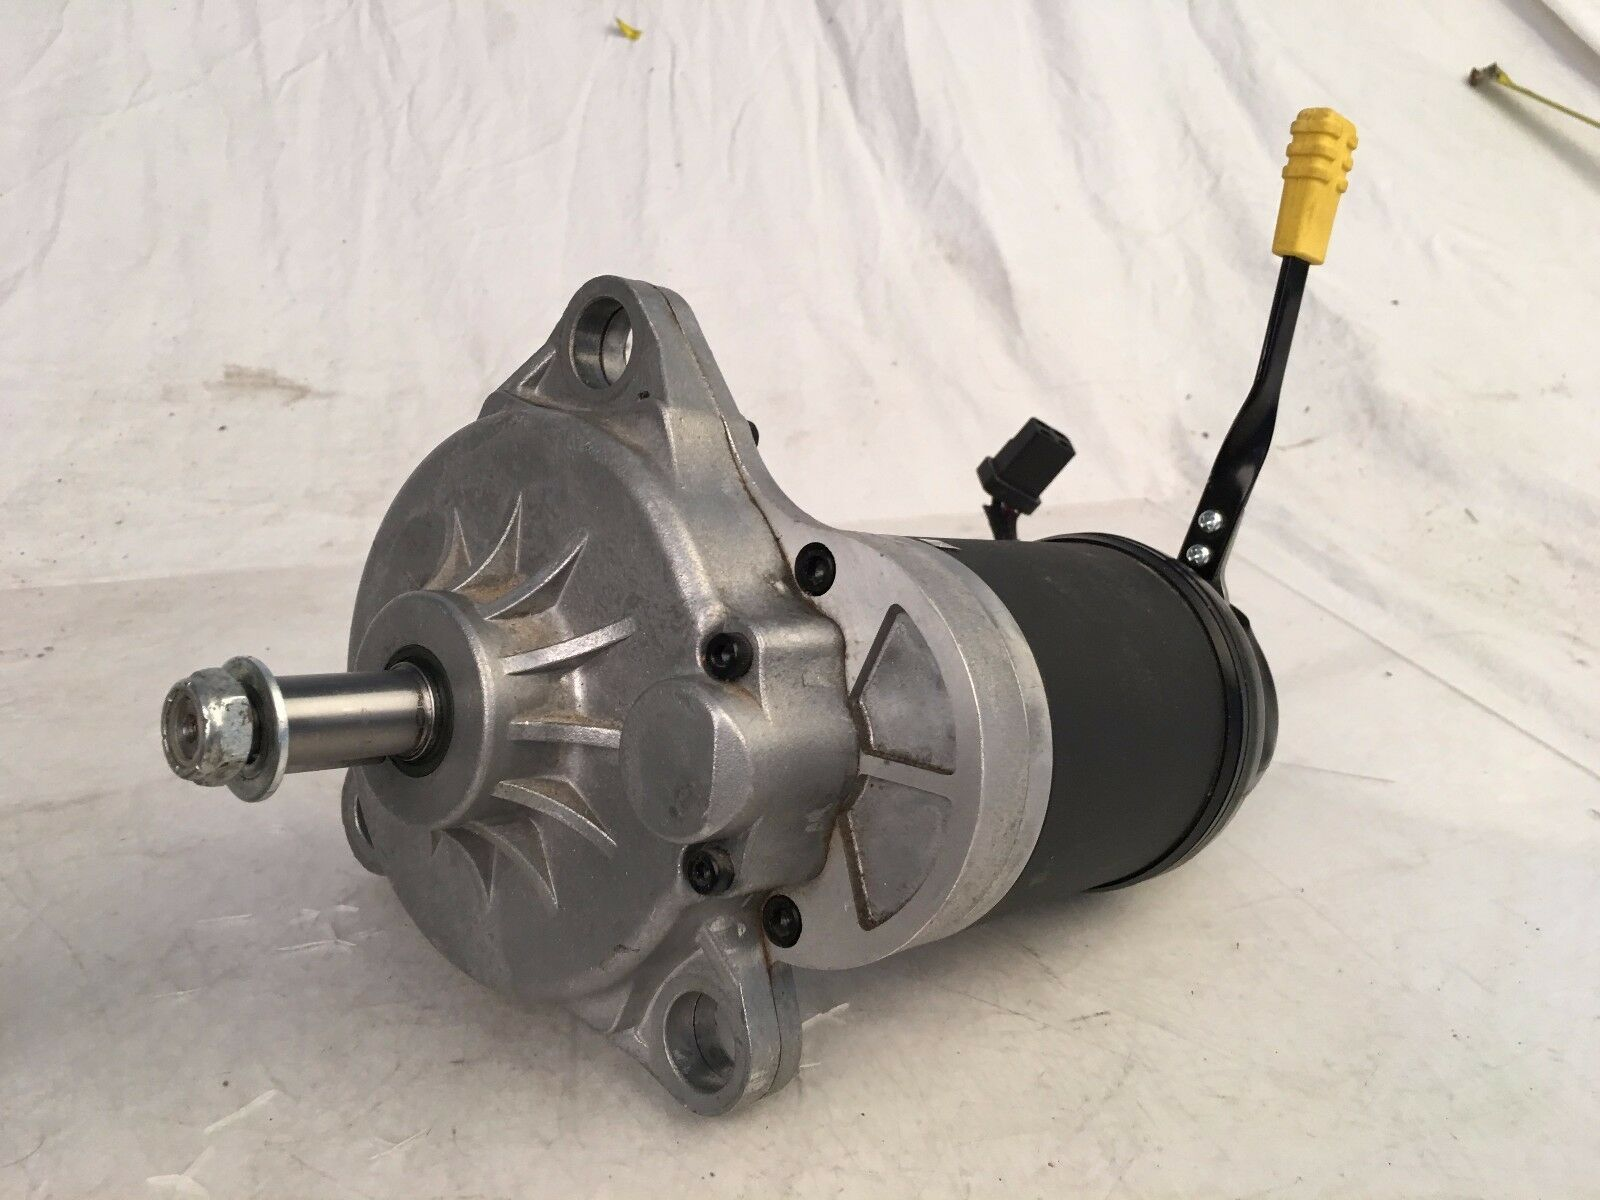 Pride Jazzy TSS 300 - Pair of Motors - Tested - For Power WheelChairs image 2